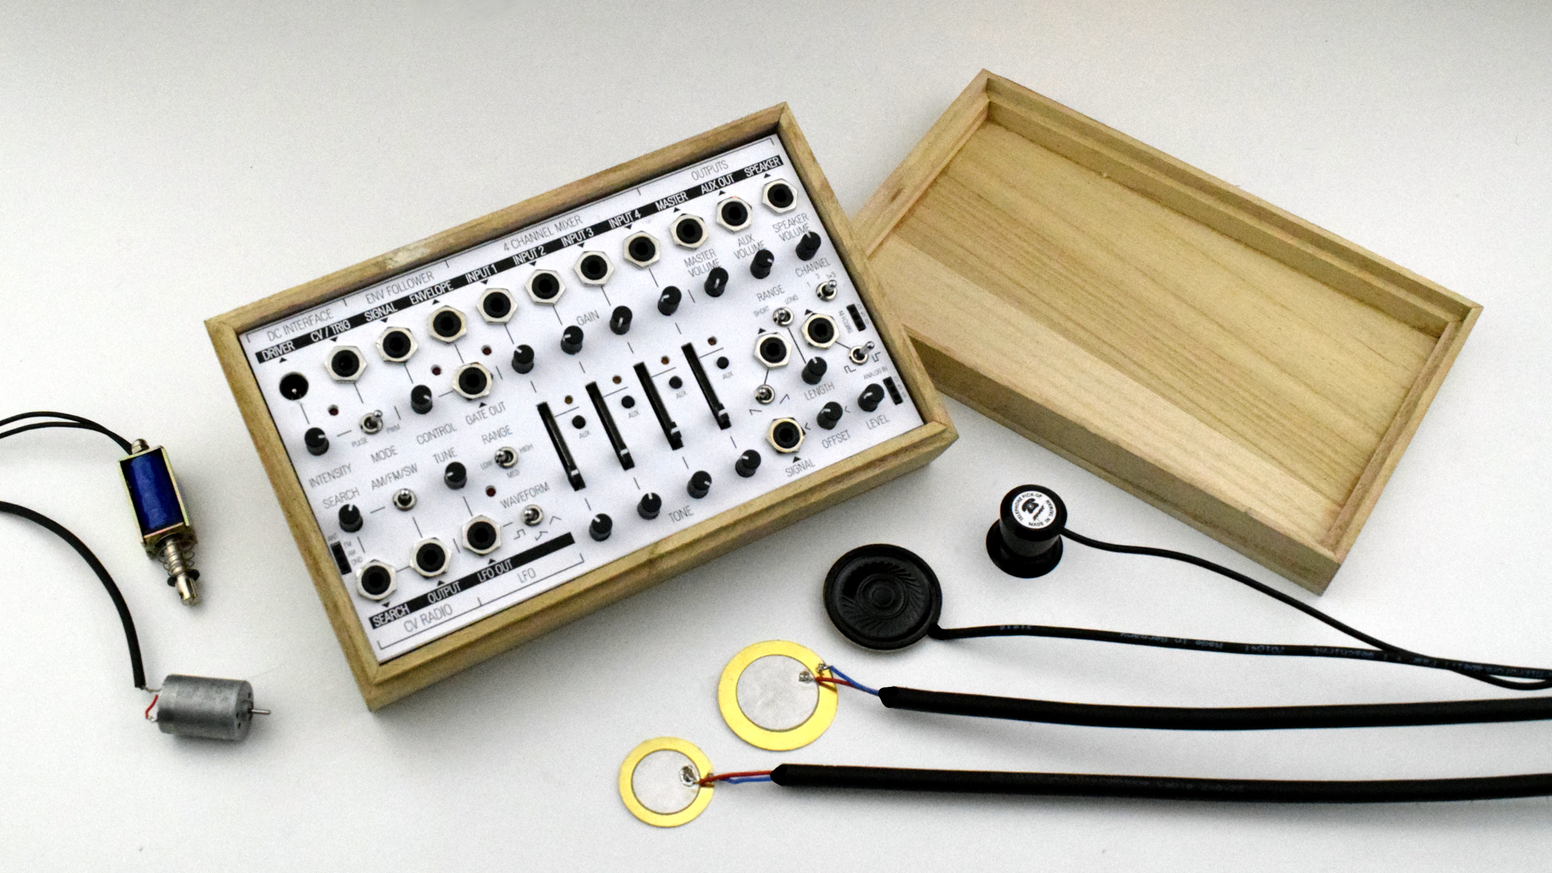 Field Kit Electroacoustic Workstation By Koma Elektronik Gmbh Car Stereo Wiring Harness At Sonic Electronix Share The Knownledge Lets You Amplify Ordinary Objects And Use Sound In A Musical